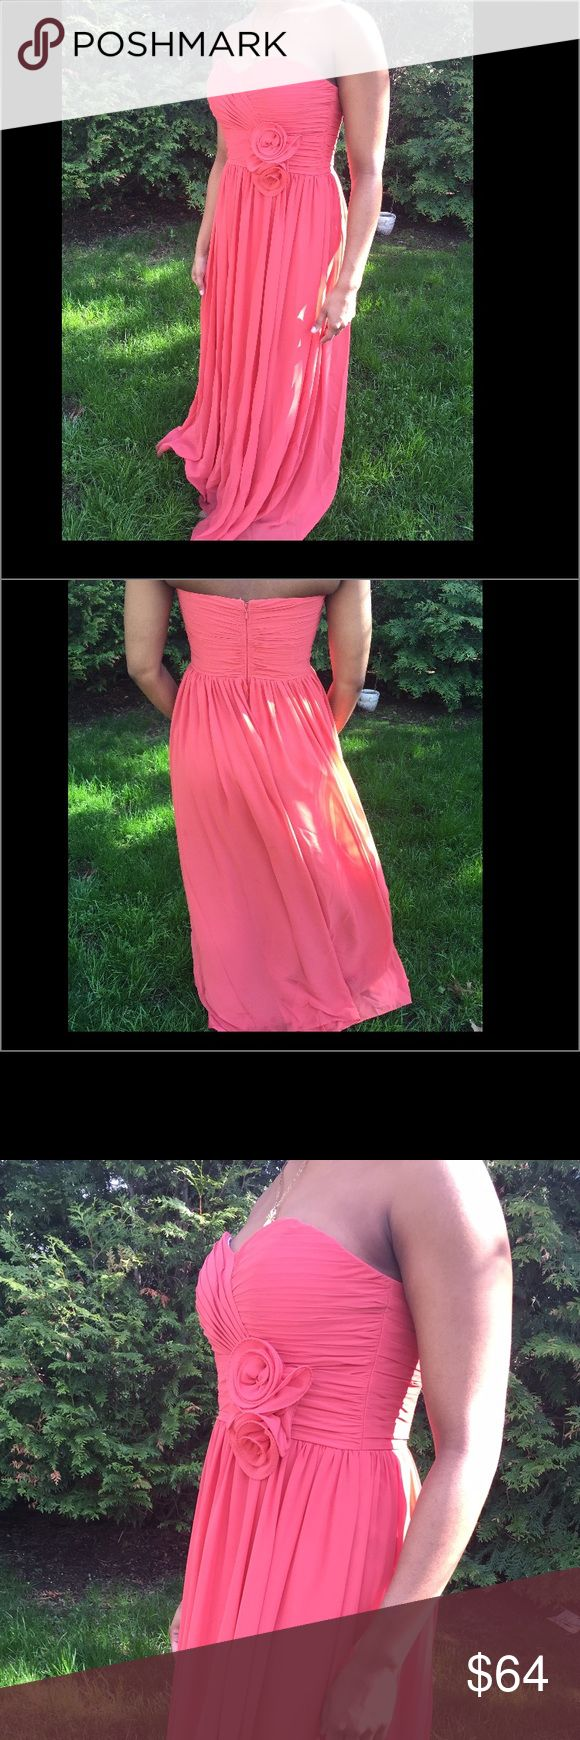 Sweetheart coral pink gown Sweet heart neckline with floral embellishment below the bust. Floor length material that is fully lined and flows. Lovely coral pink shade, perfect pop of color for any event: prom, formal, wedding. Bari Jay Dresses